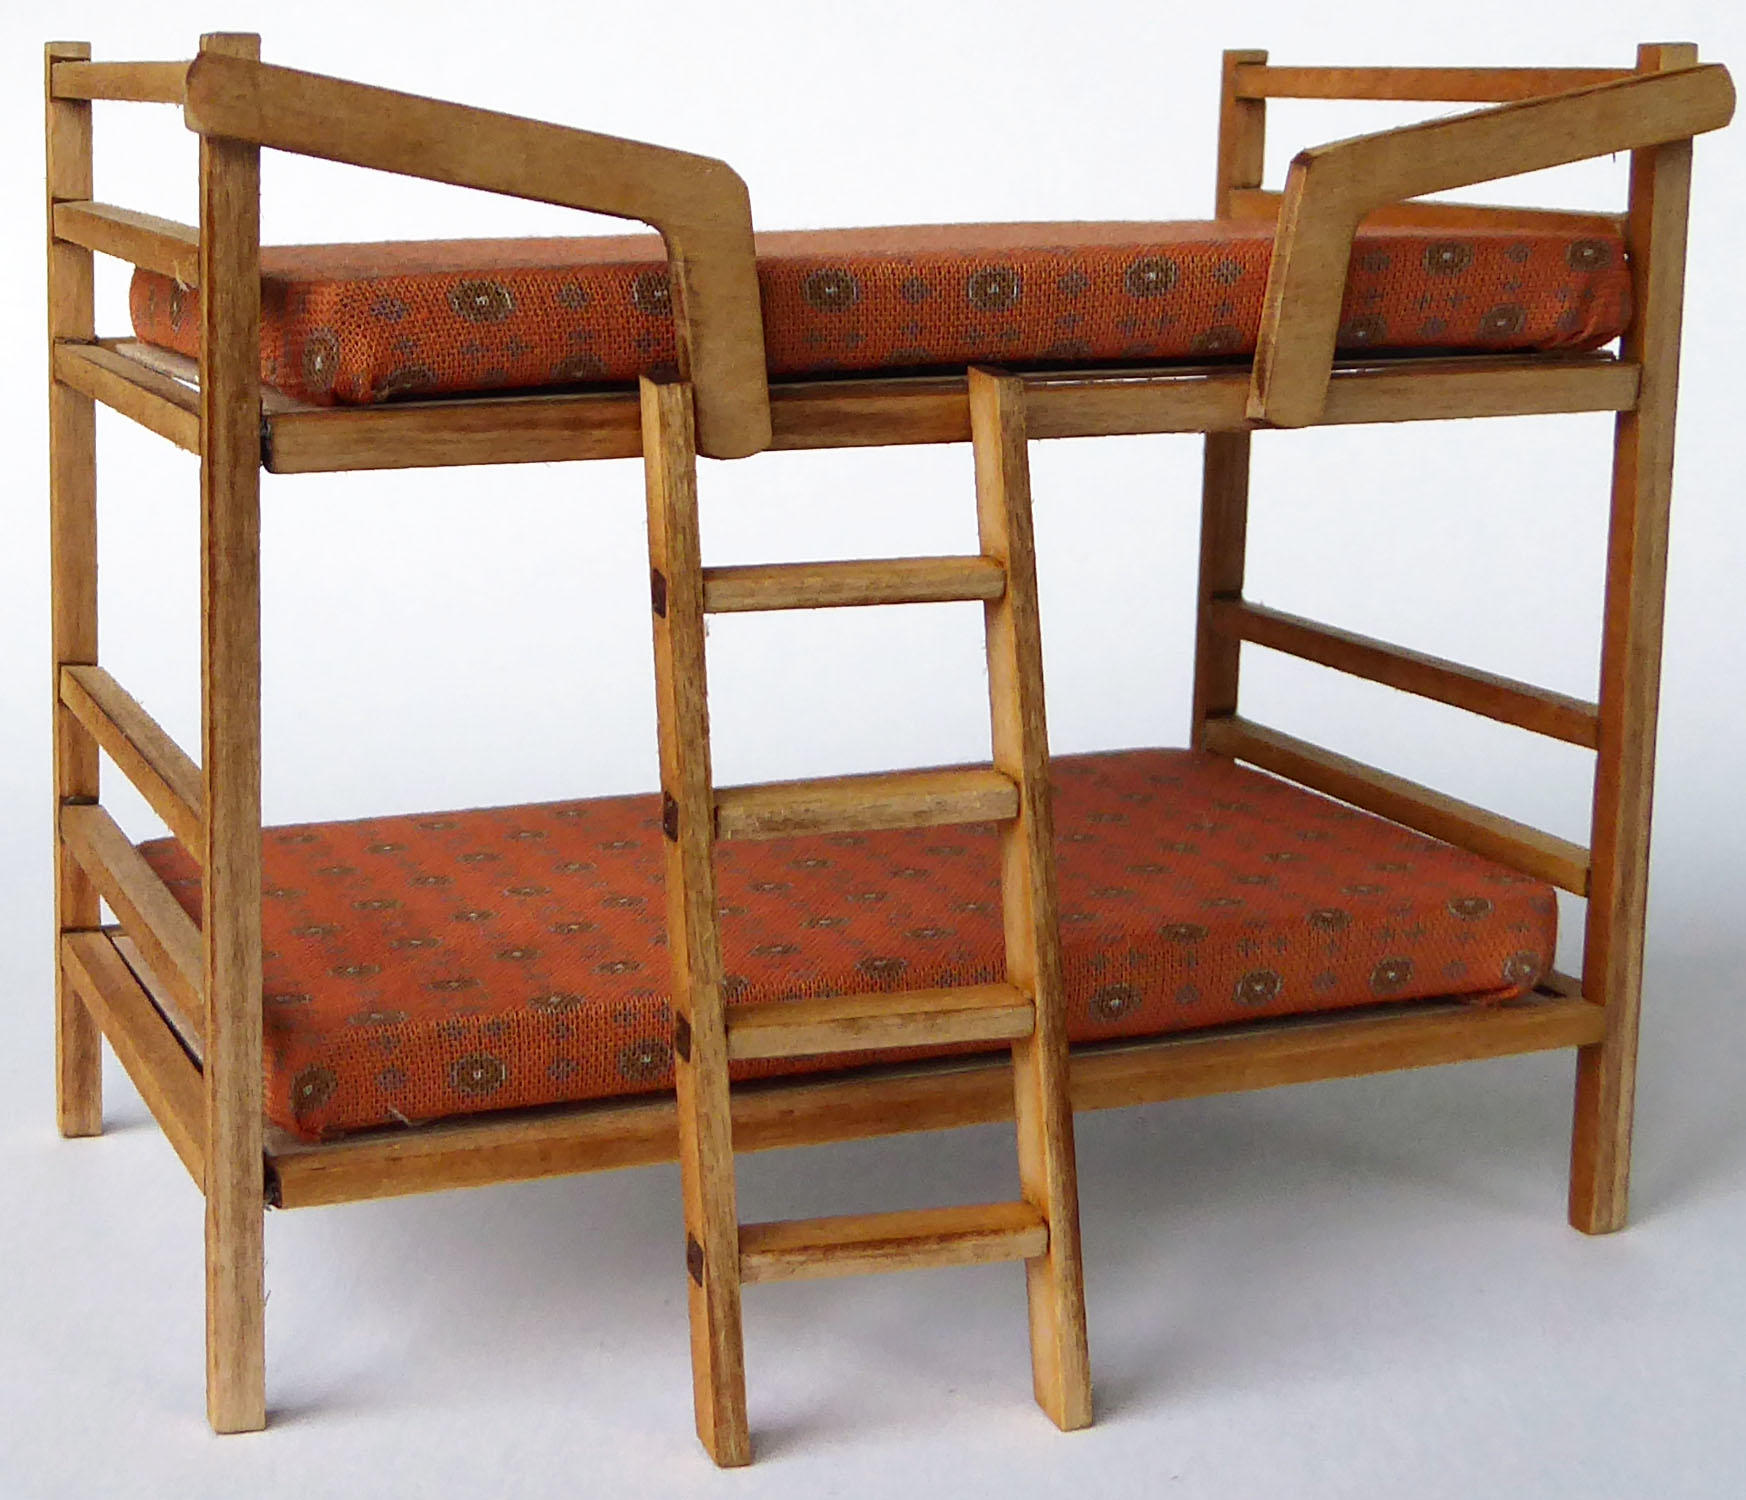 1/24th scale 70s Retro Bunk Beds Kit